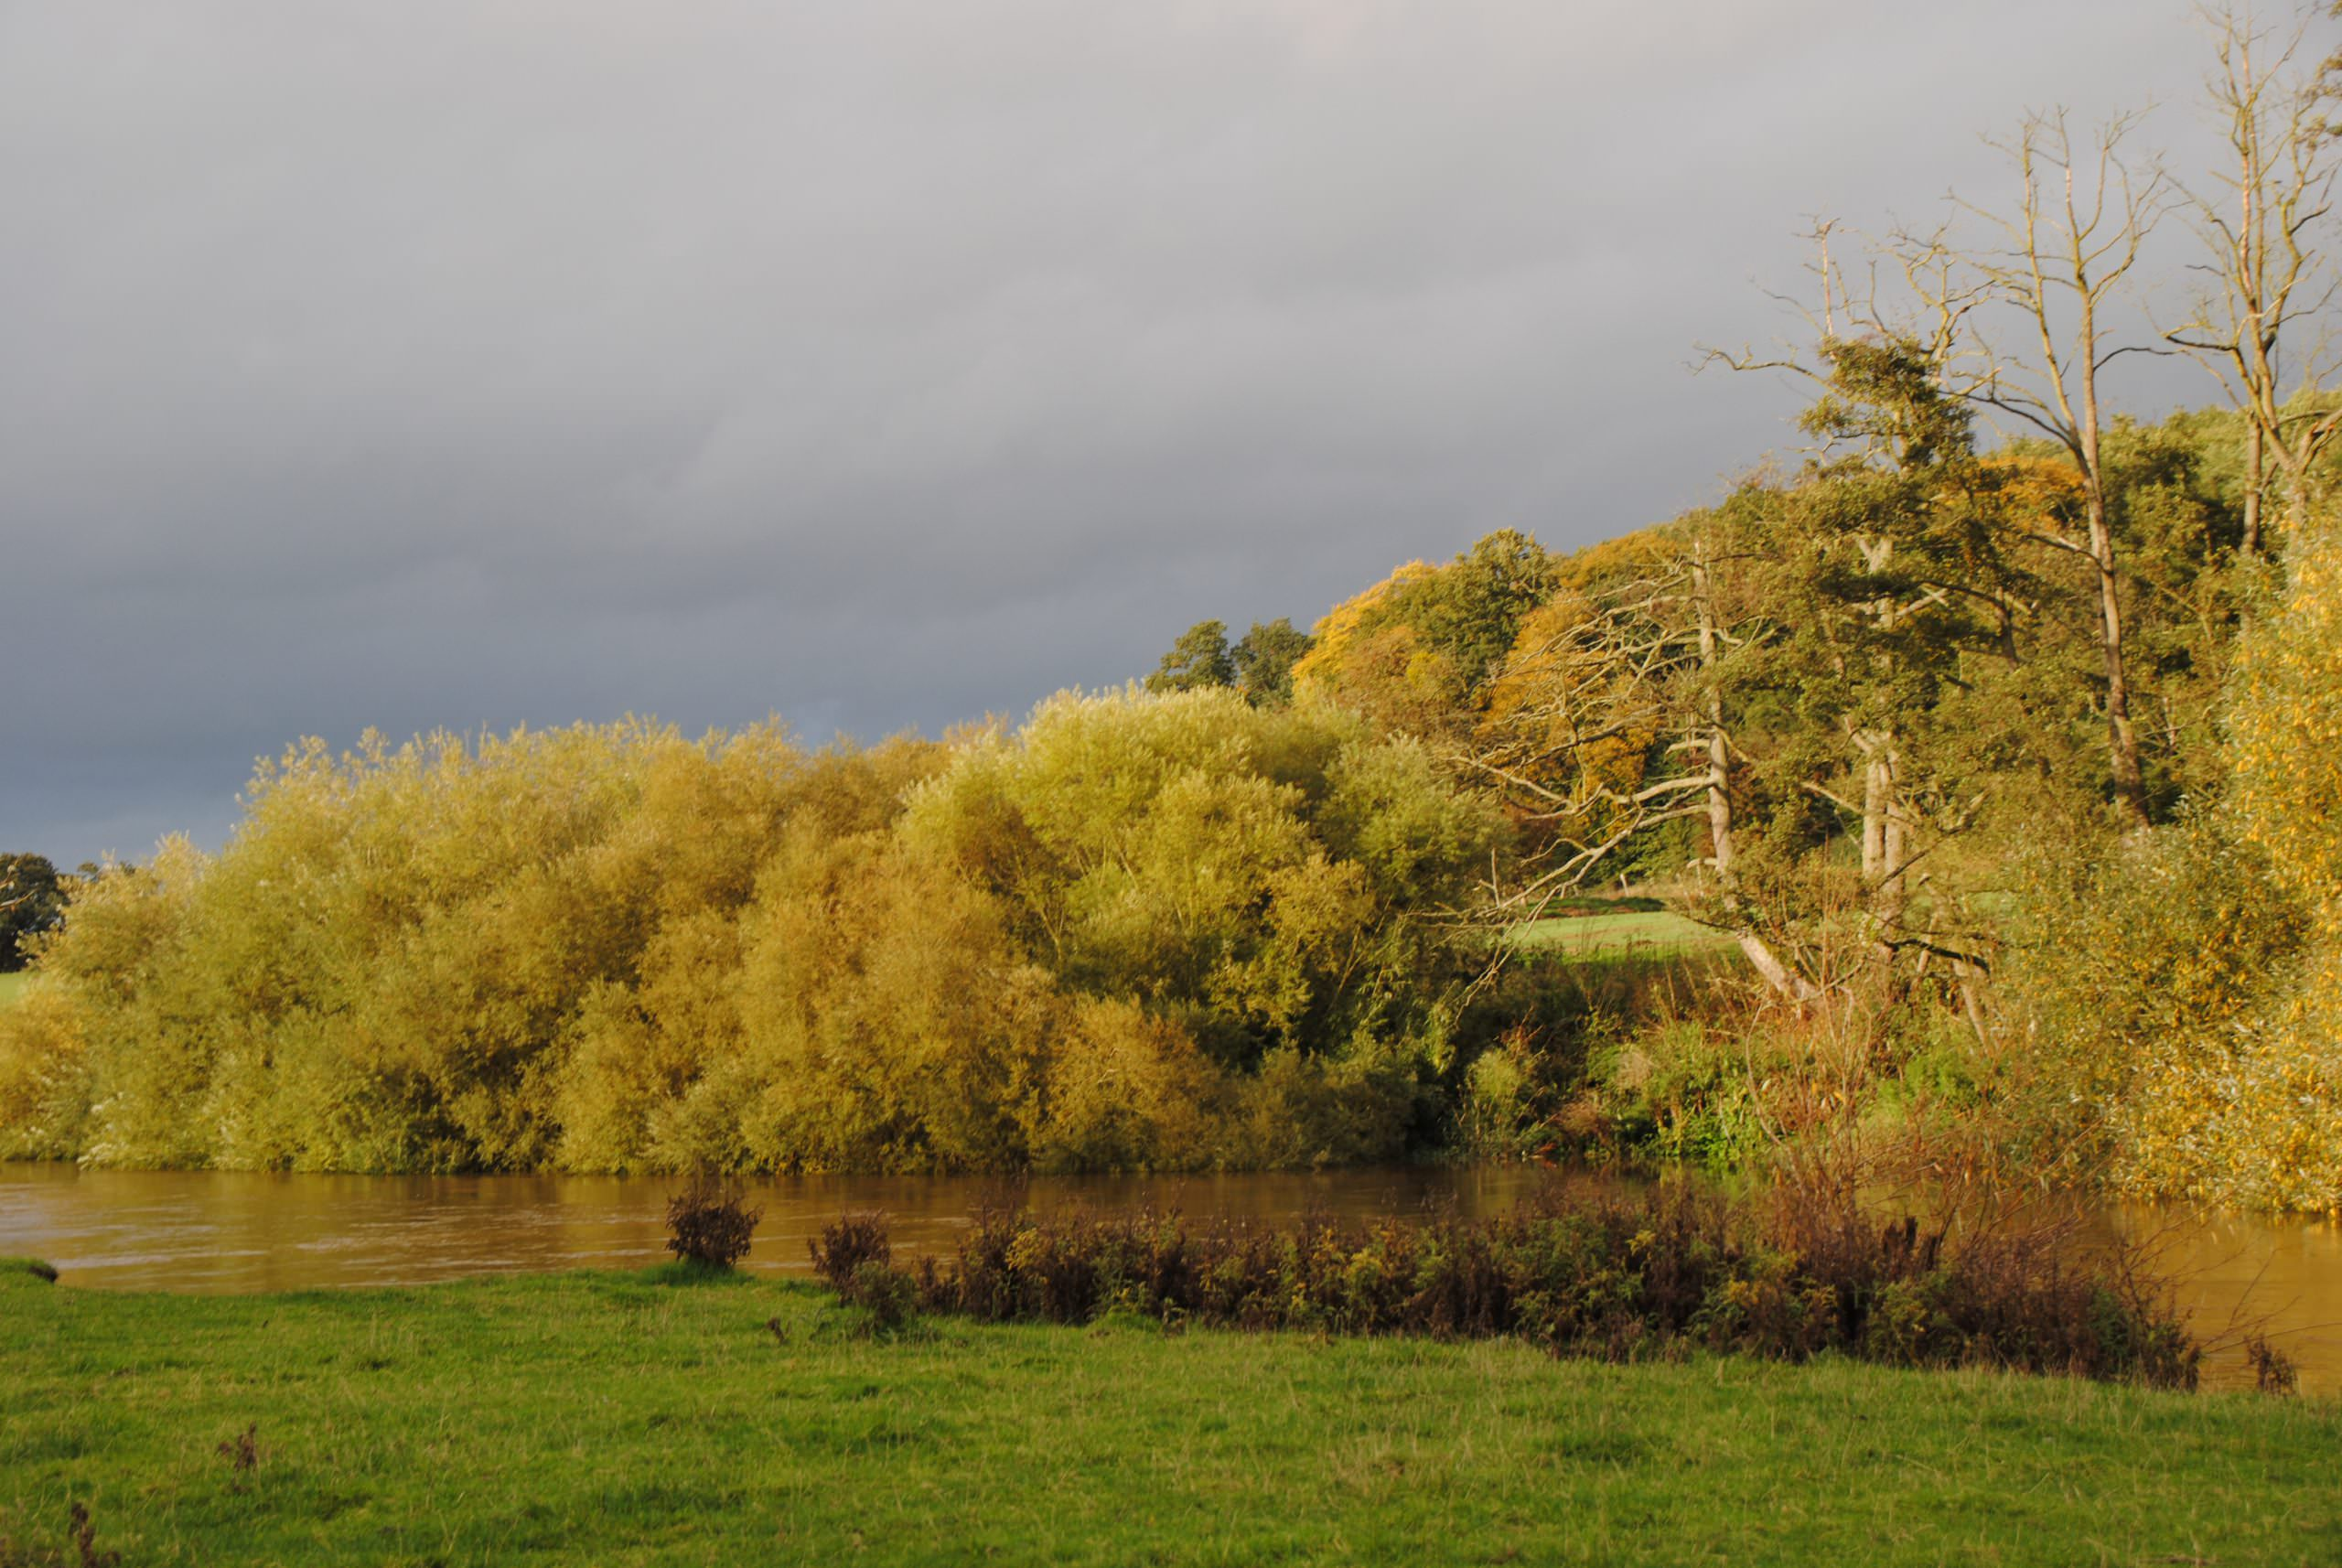 An early autumn view of the river Severn, the tall trees on the far bank are in full leaf but are turning golden and brown the river is high and the bank on the near side is green. The sky is moody and grey.